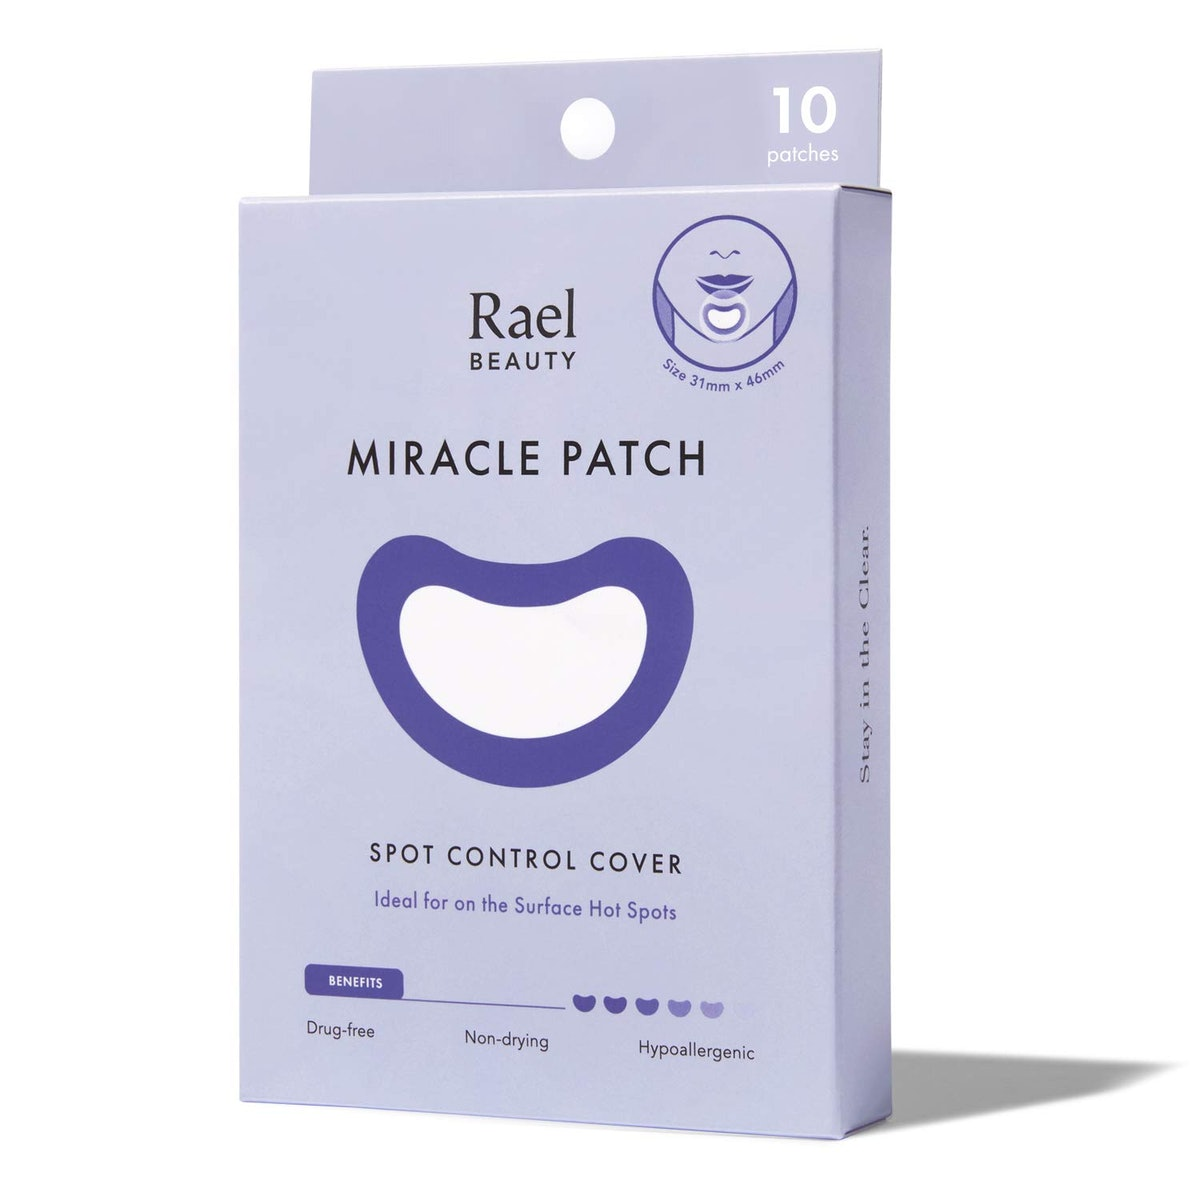 Rael Acne Healing Patches (10 Count)